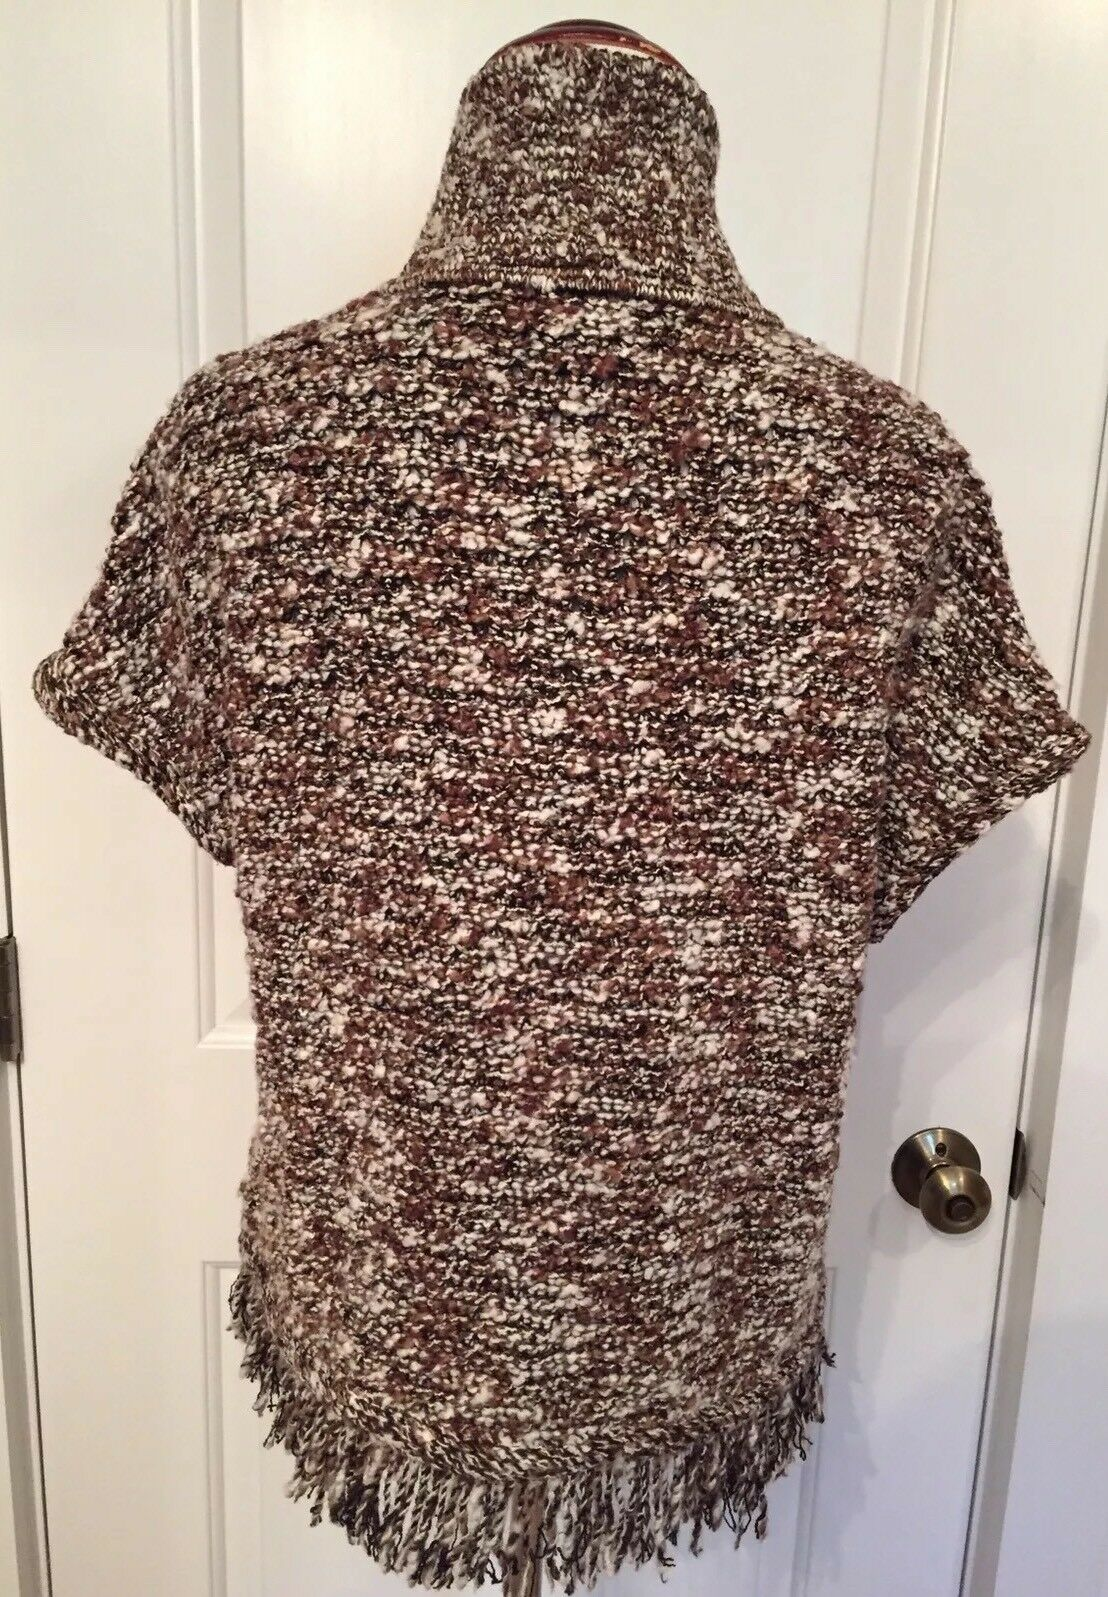 ST. JOHN WOMENS SWEATER CARDIGAN SMALL BROWN BROWN BROWN WHITE MARLED KNIT FRINGE CAP SLEEVE a721d9